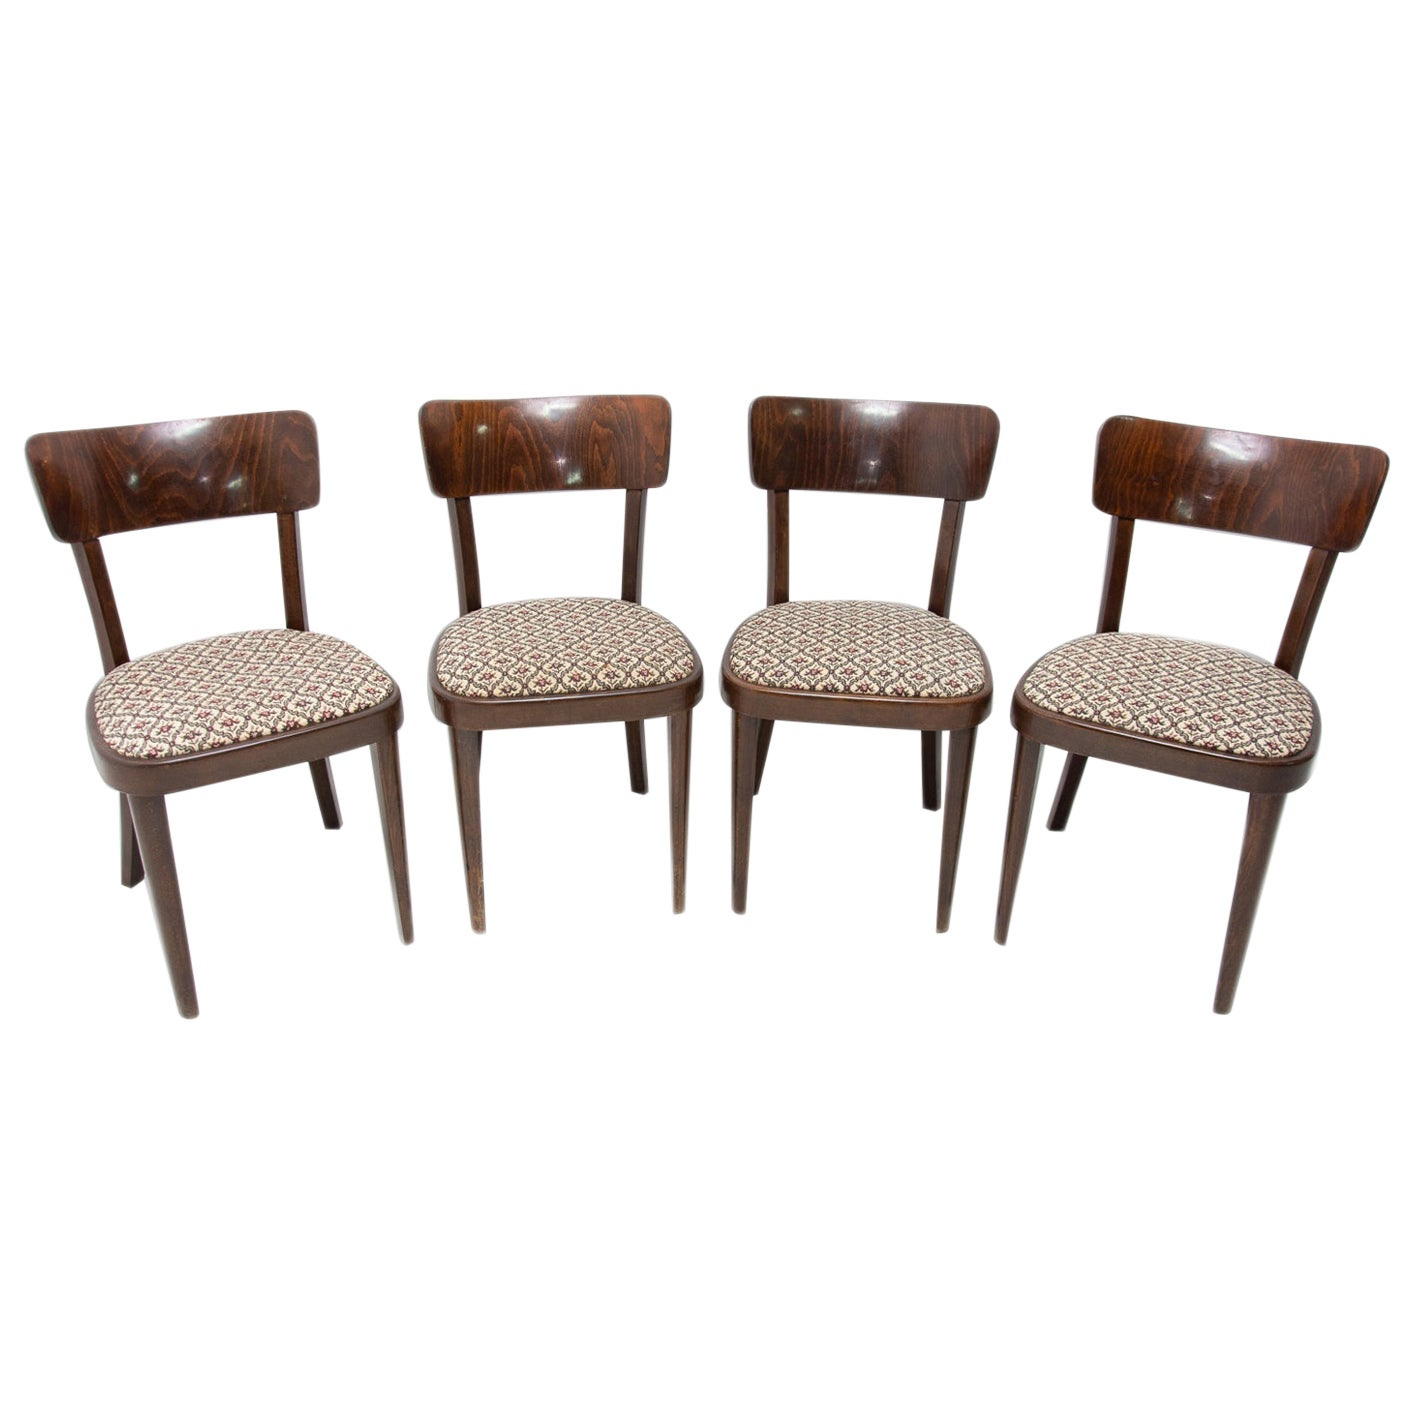 Set of Four Thonet Dining Chairs, Czechoslovakia, 1950s